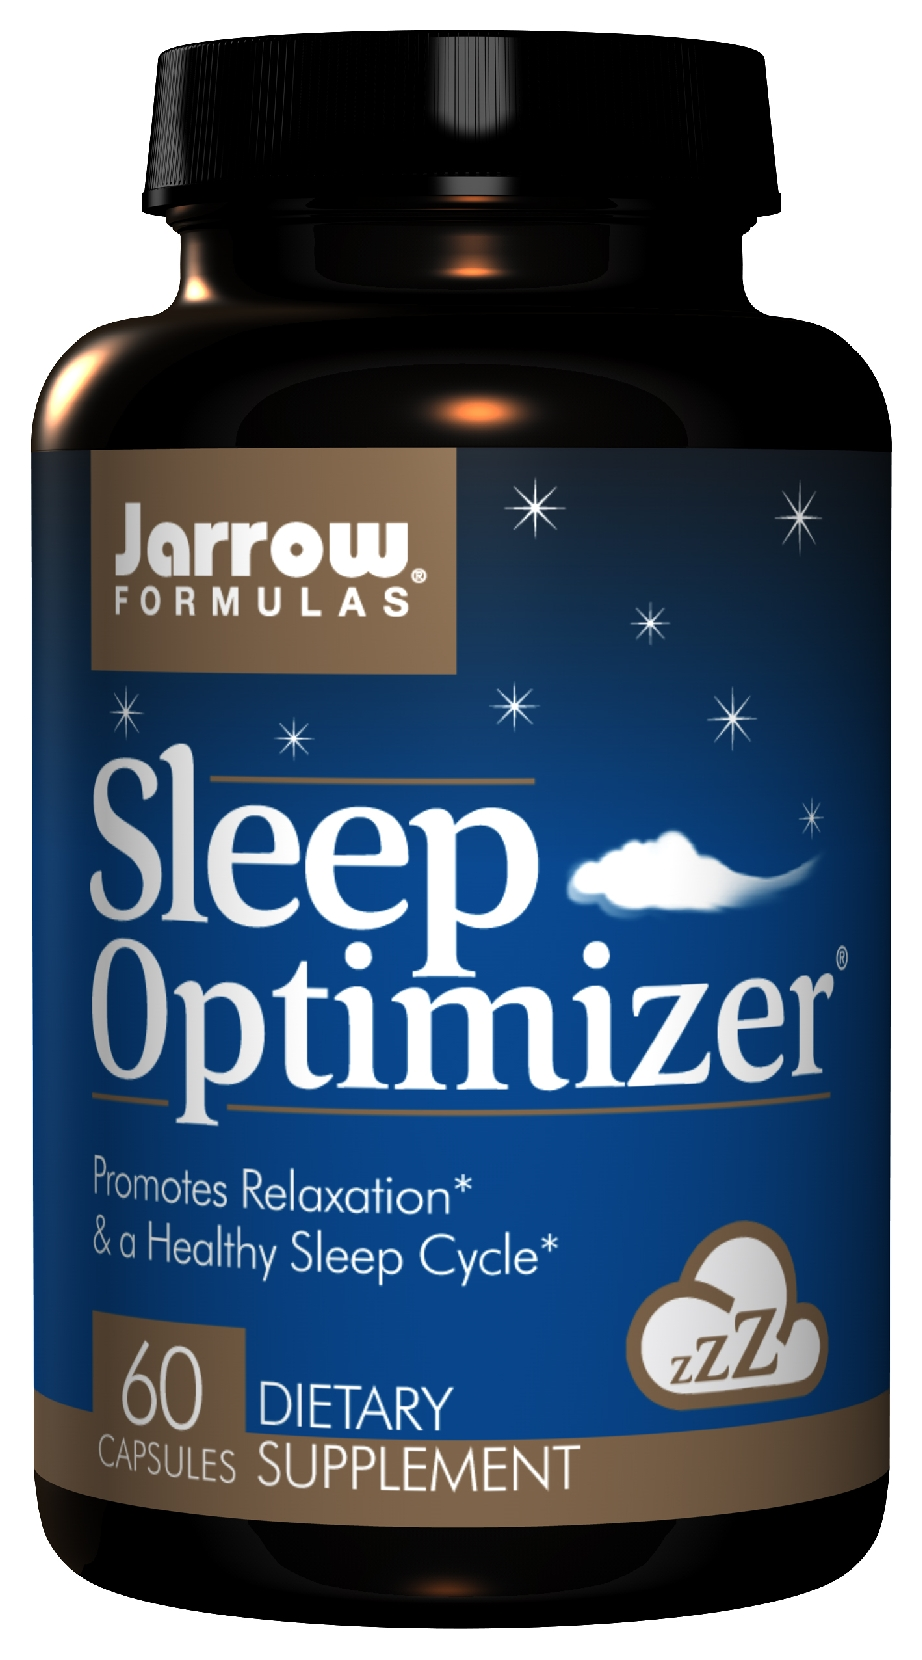 Sleep Optimizer 60 Vegetarian caps by Jarrow Formulas